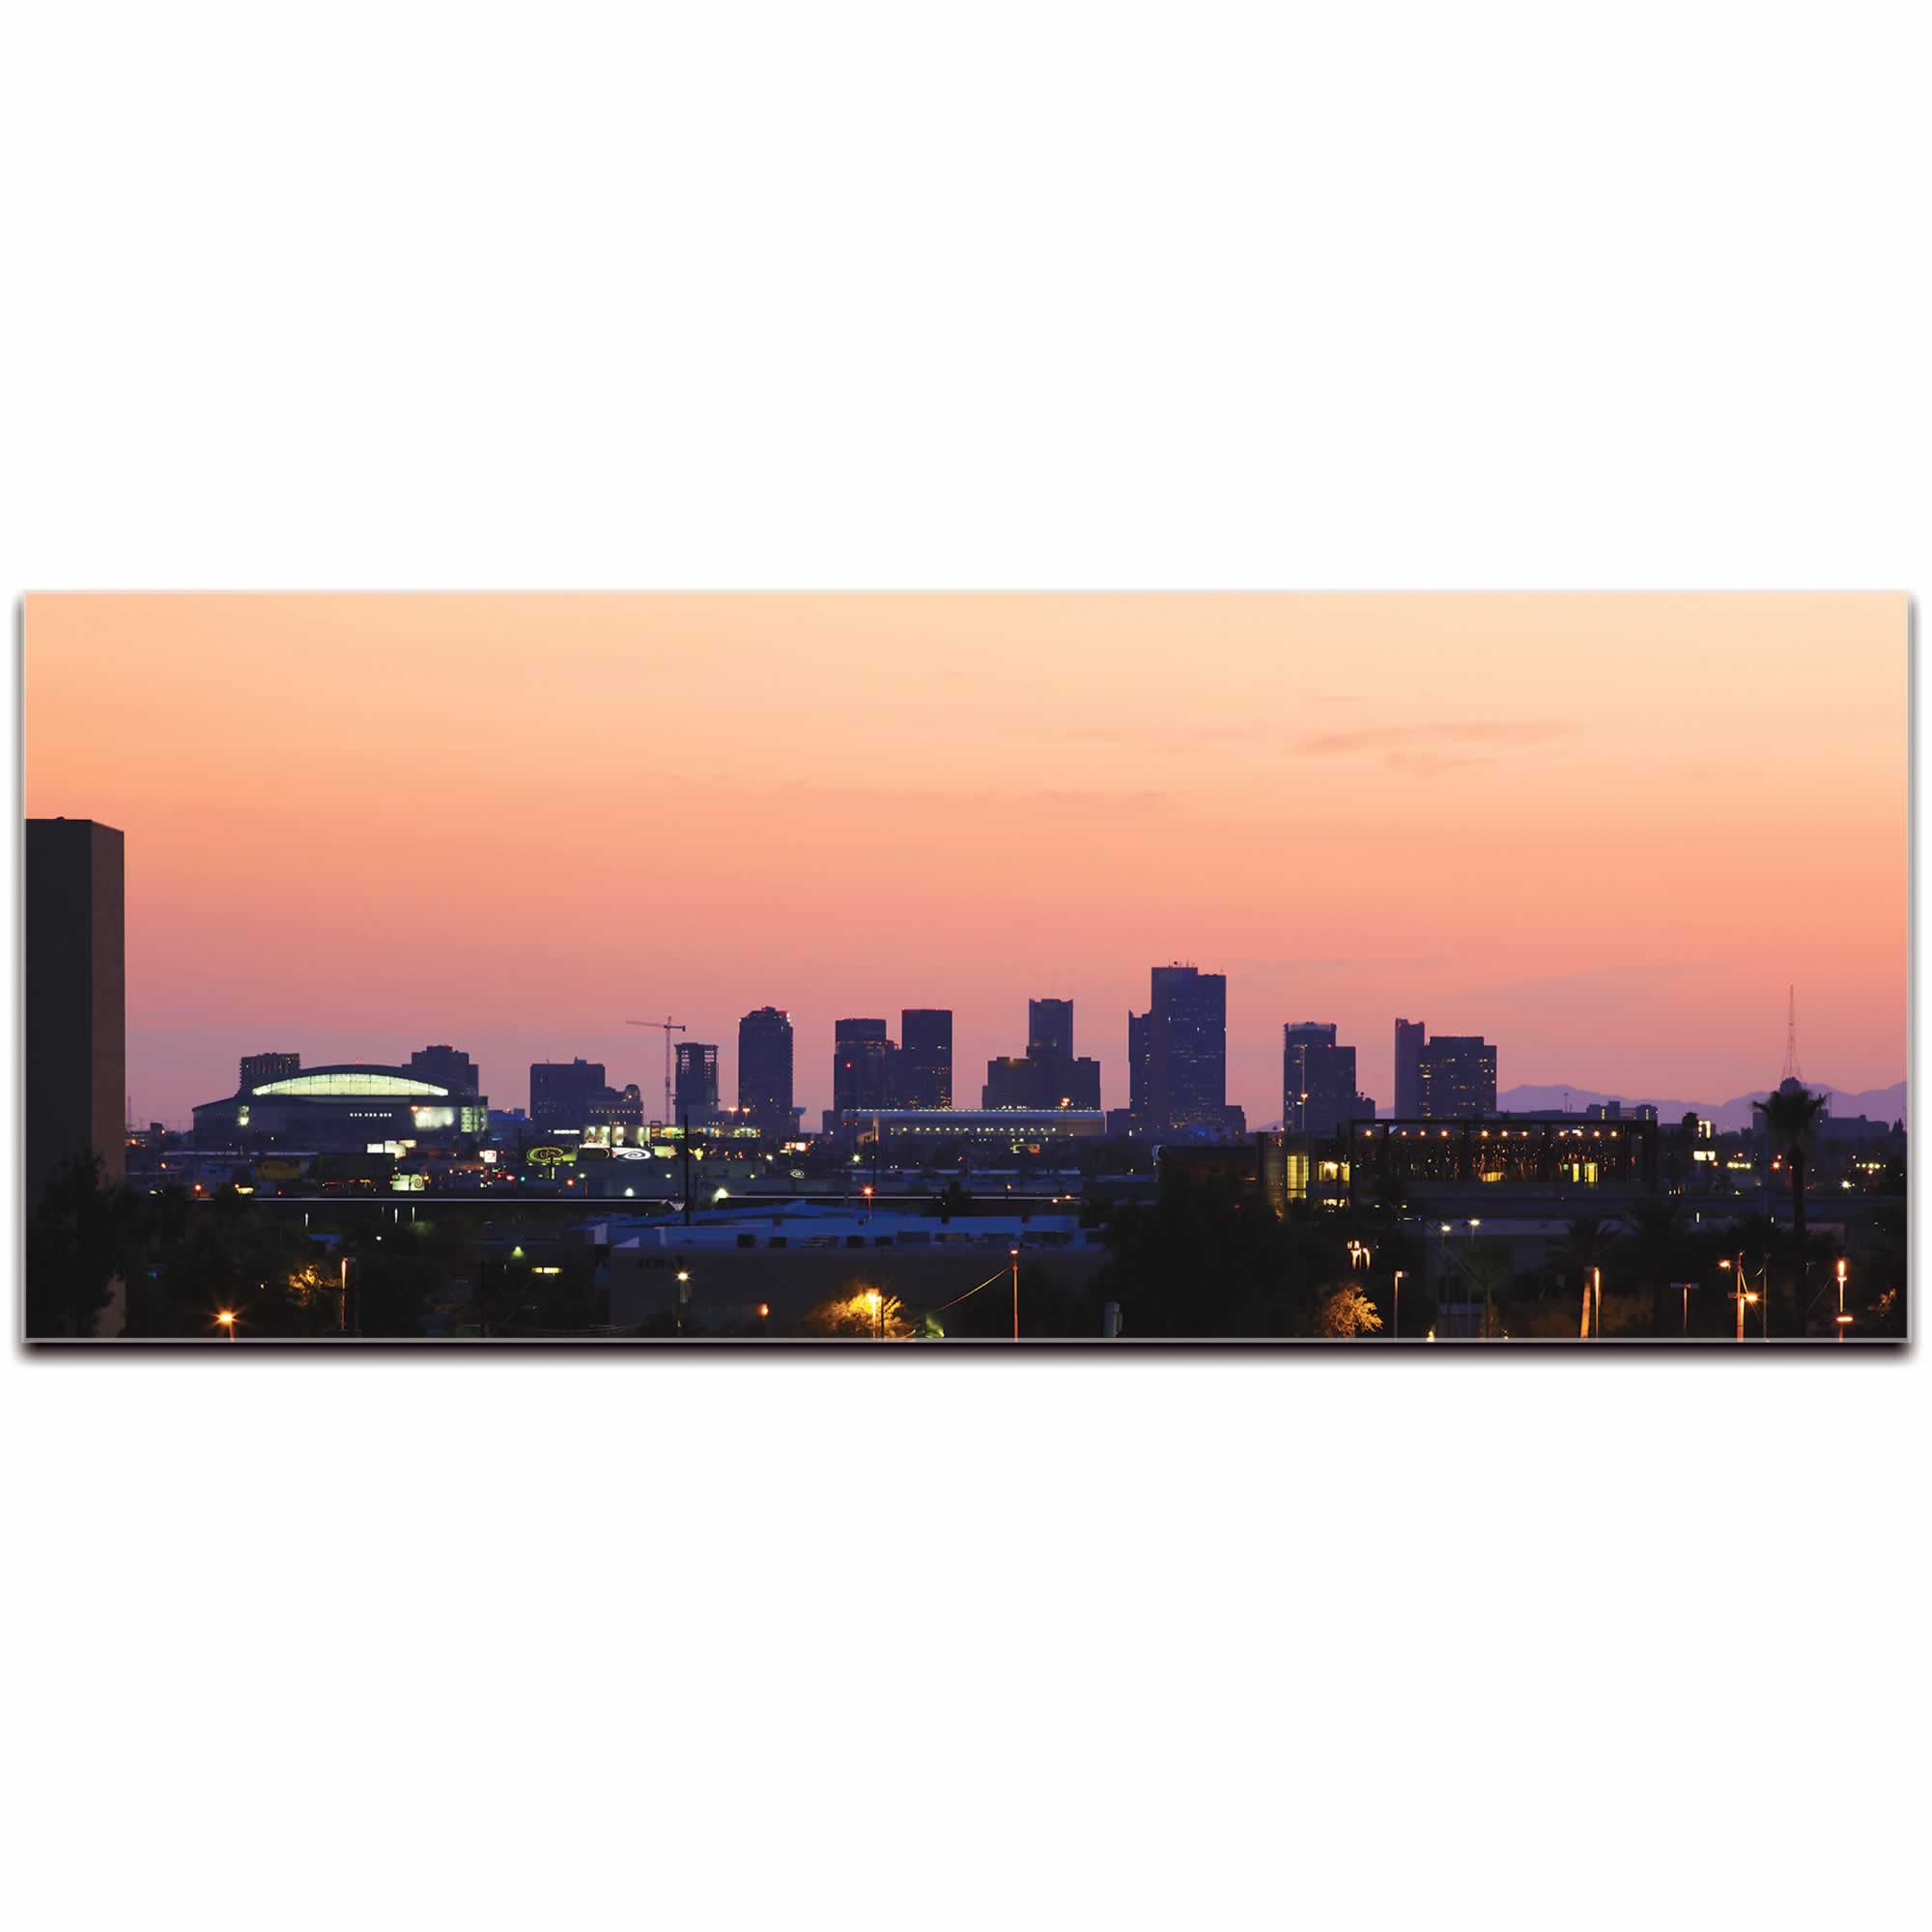 Phoenix City Skyline - Urban Modern Art, Designer Home Decor, Cityscape Wall Artwork,